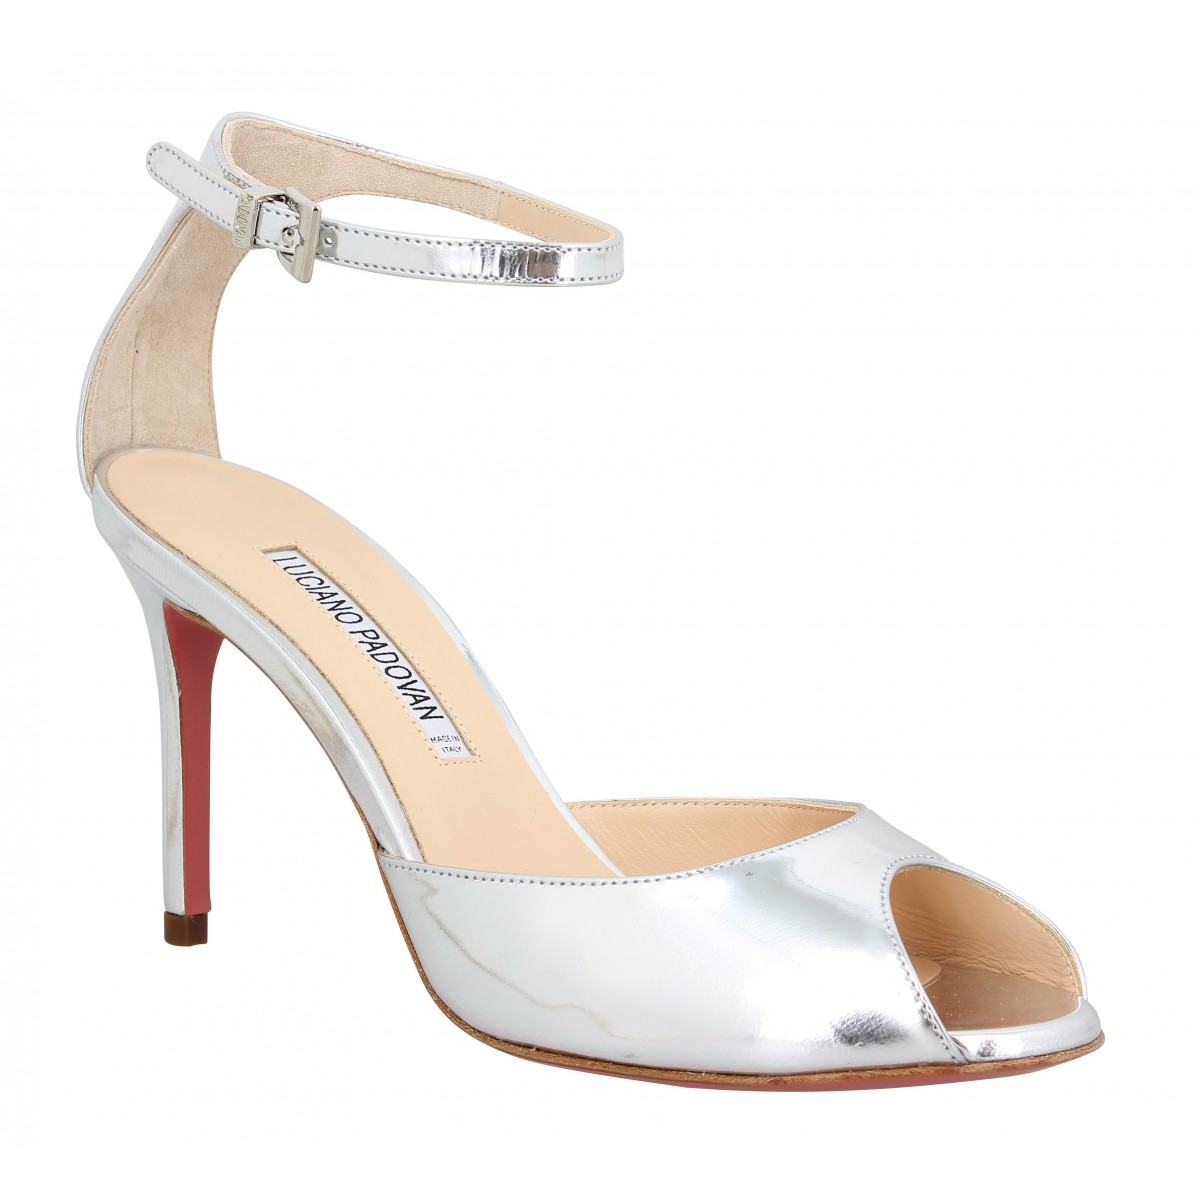 Sandales talons LUCIANO PADOVAN 306 cuir Femme Argent